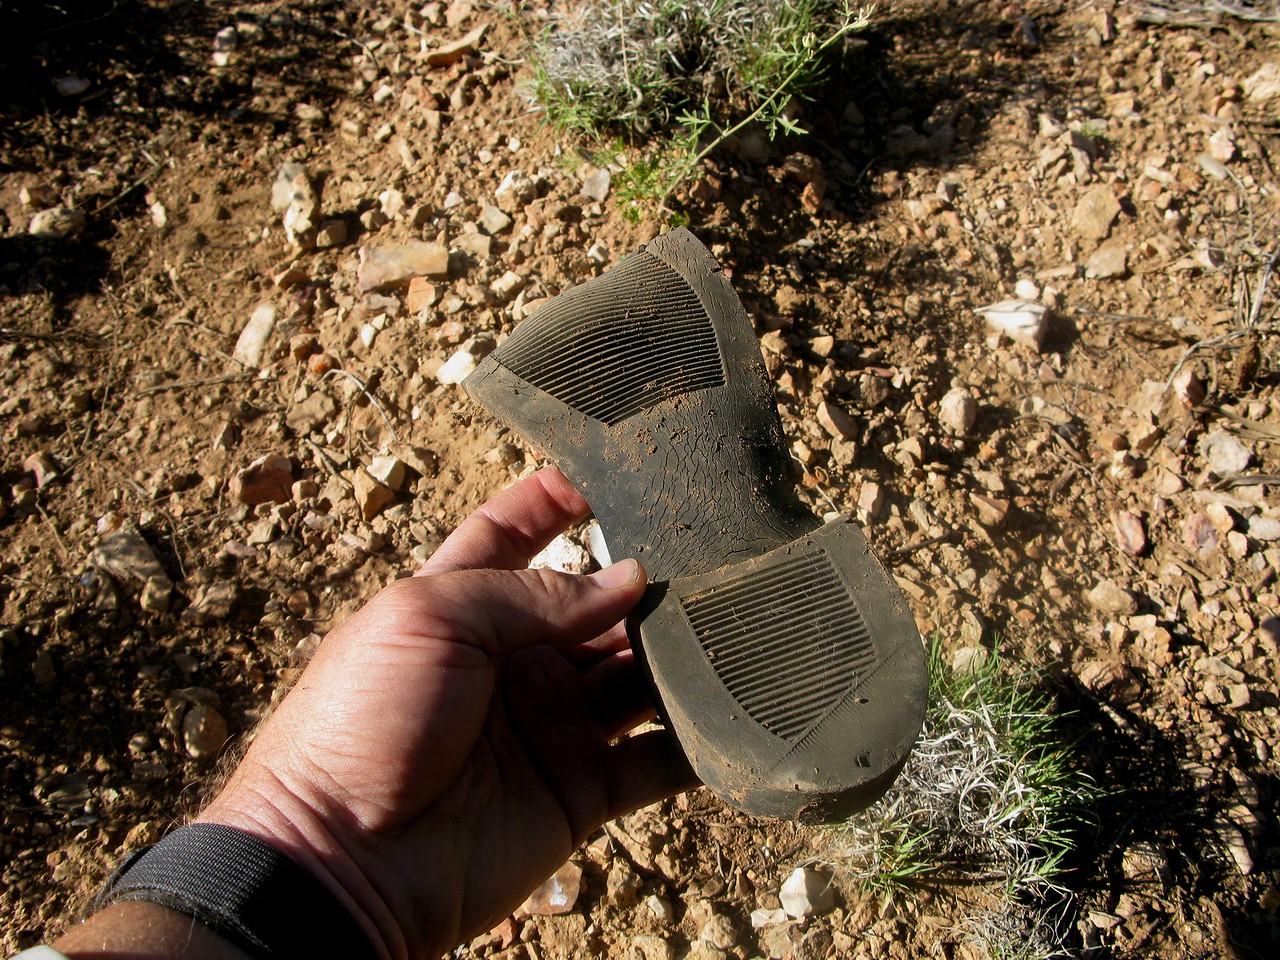 The bottom part of a shoe was located in the debris field.